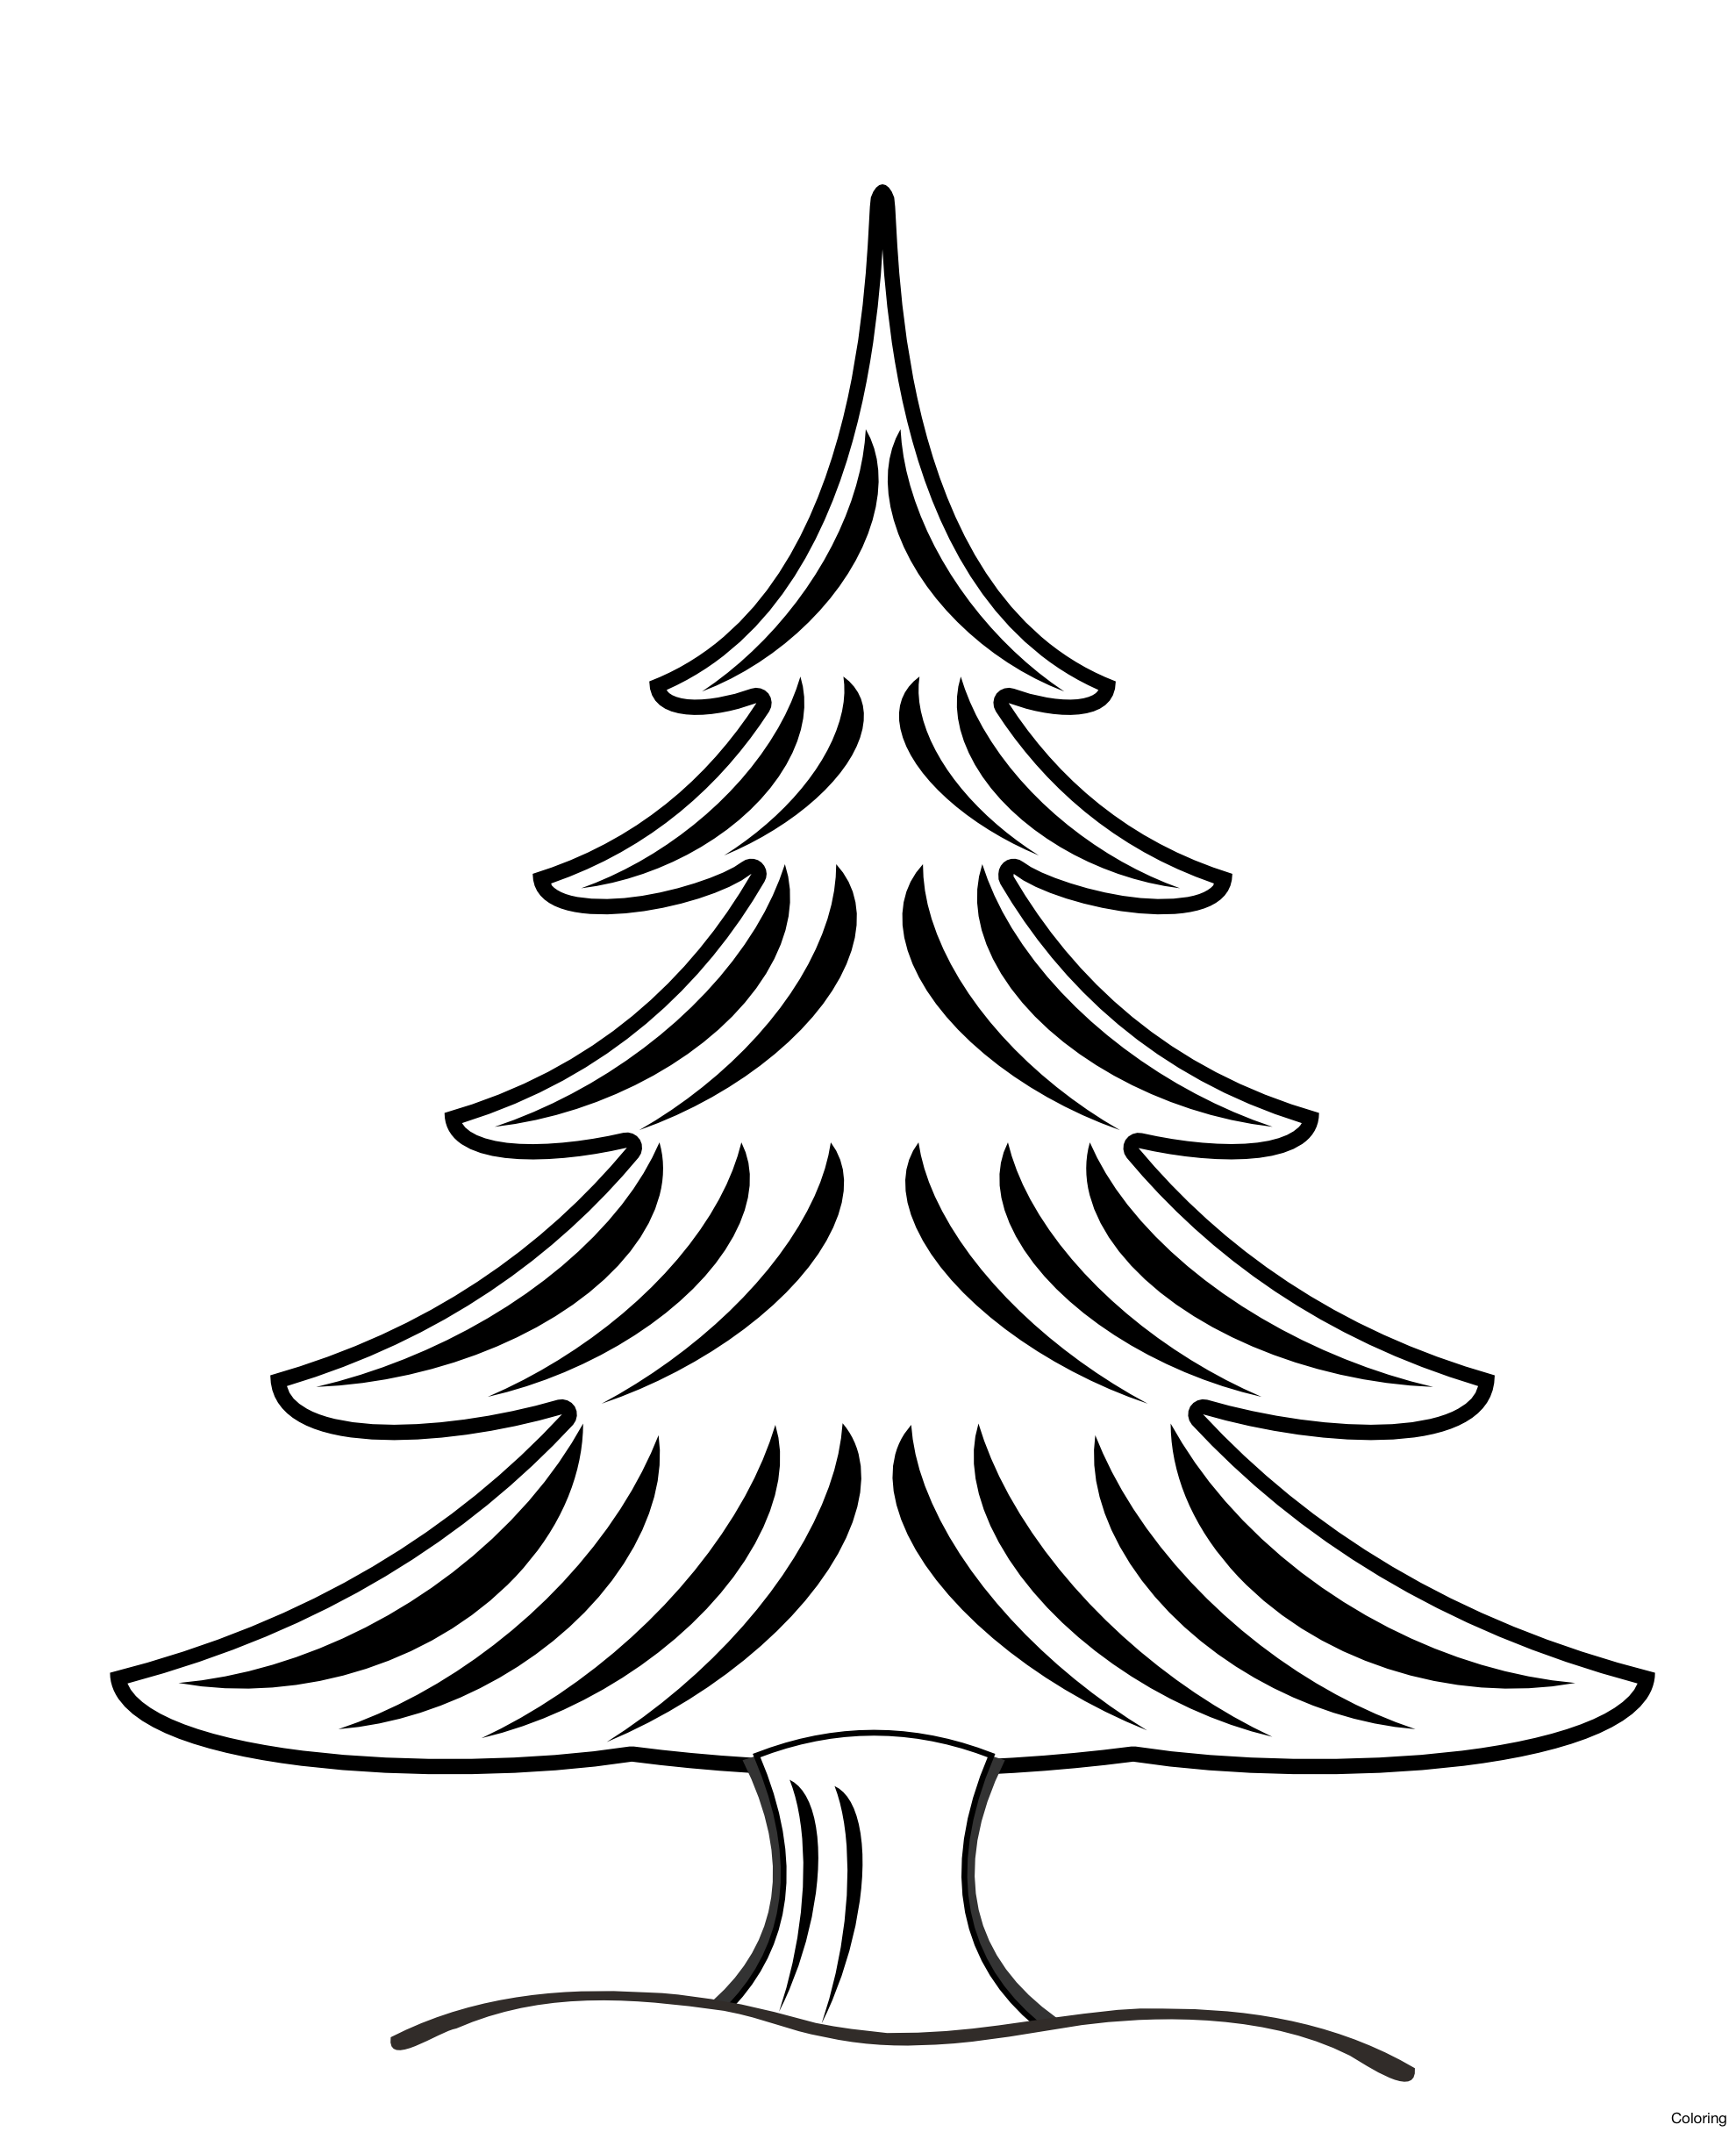 clip library download Drawing snow tree. White pine at getdrawings